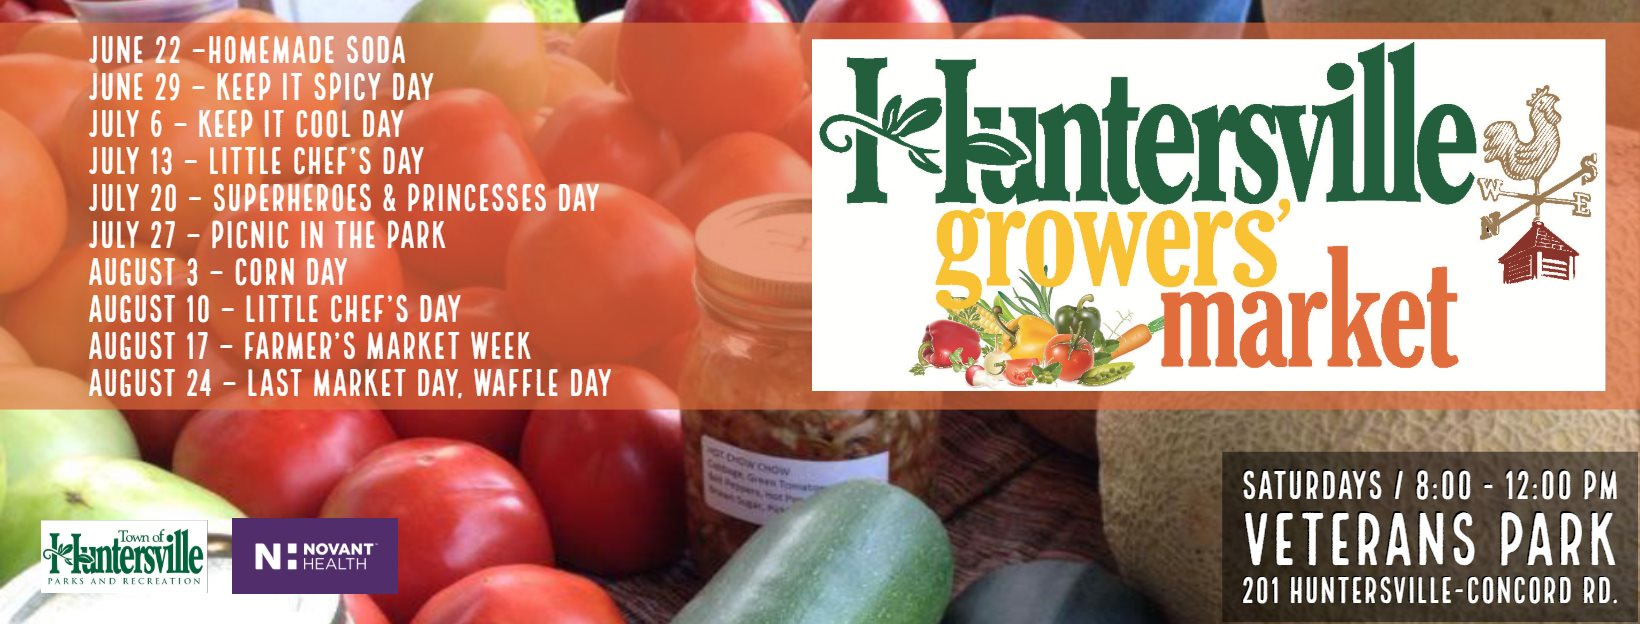 Image Courtesy of Huntersville, Growers' Market